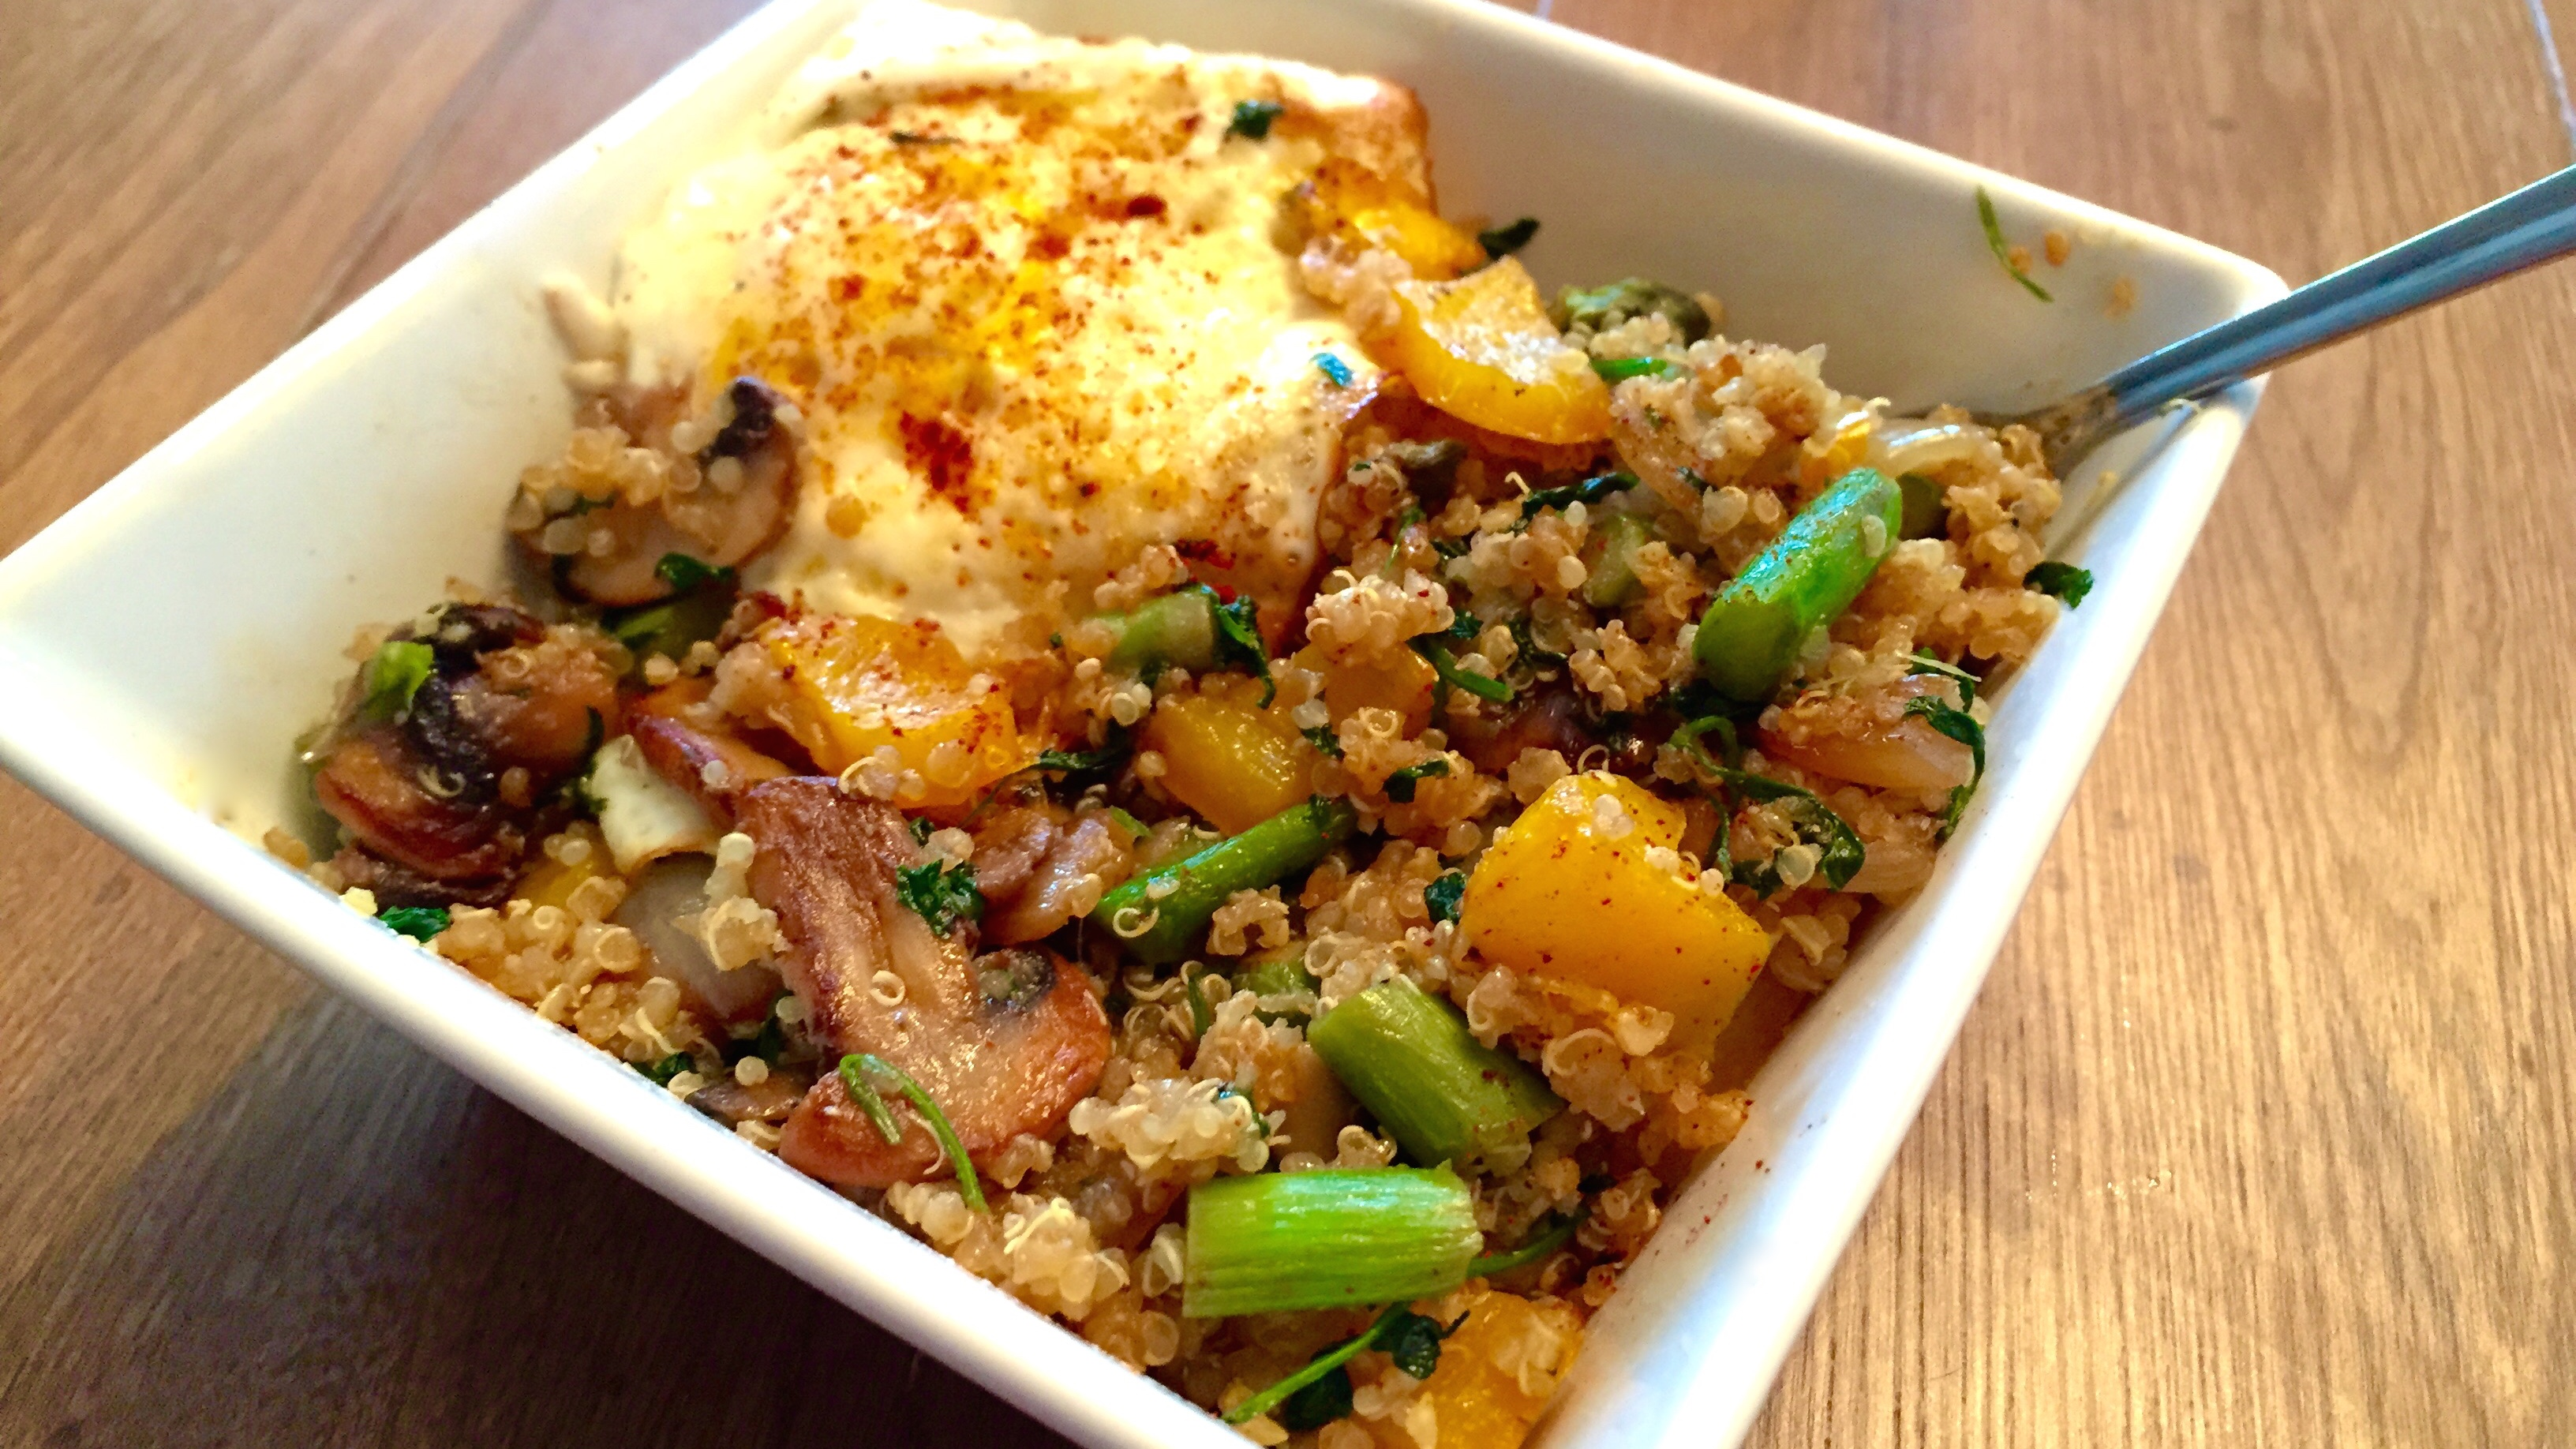 How To Cook Quinoa Make Cooking Quinoa Quick And Easy 21 Day Weight Loss